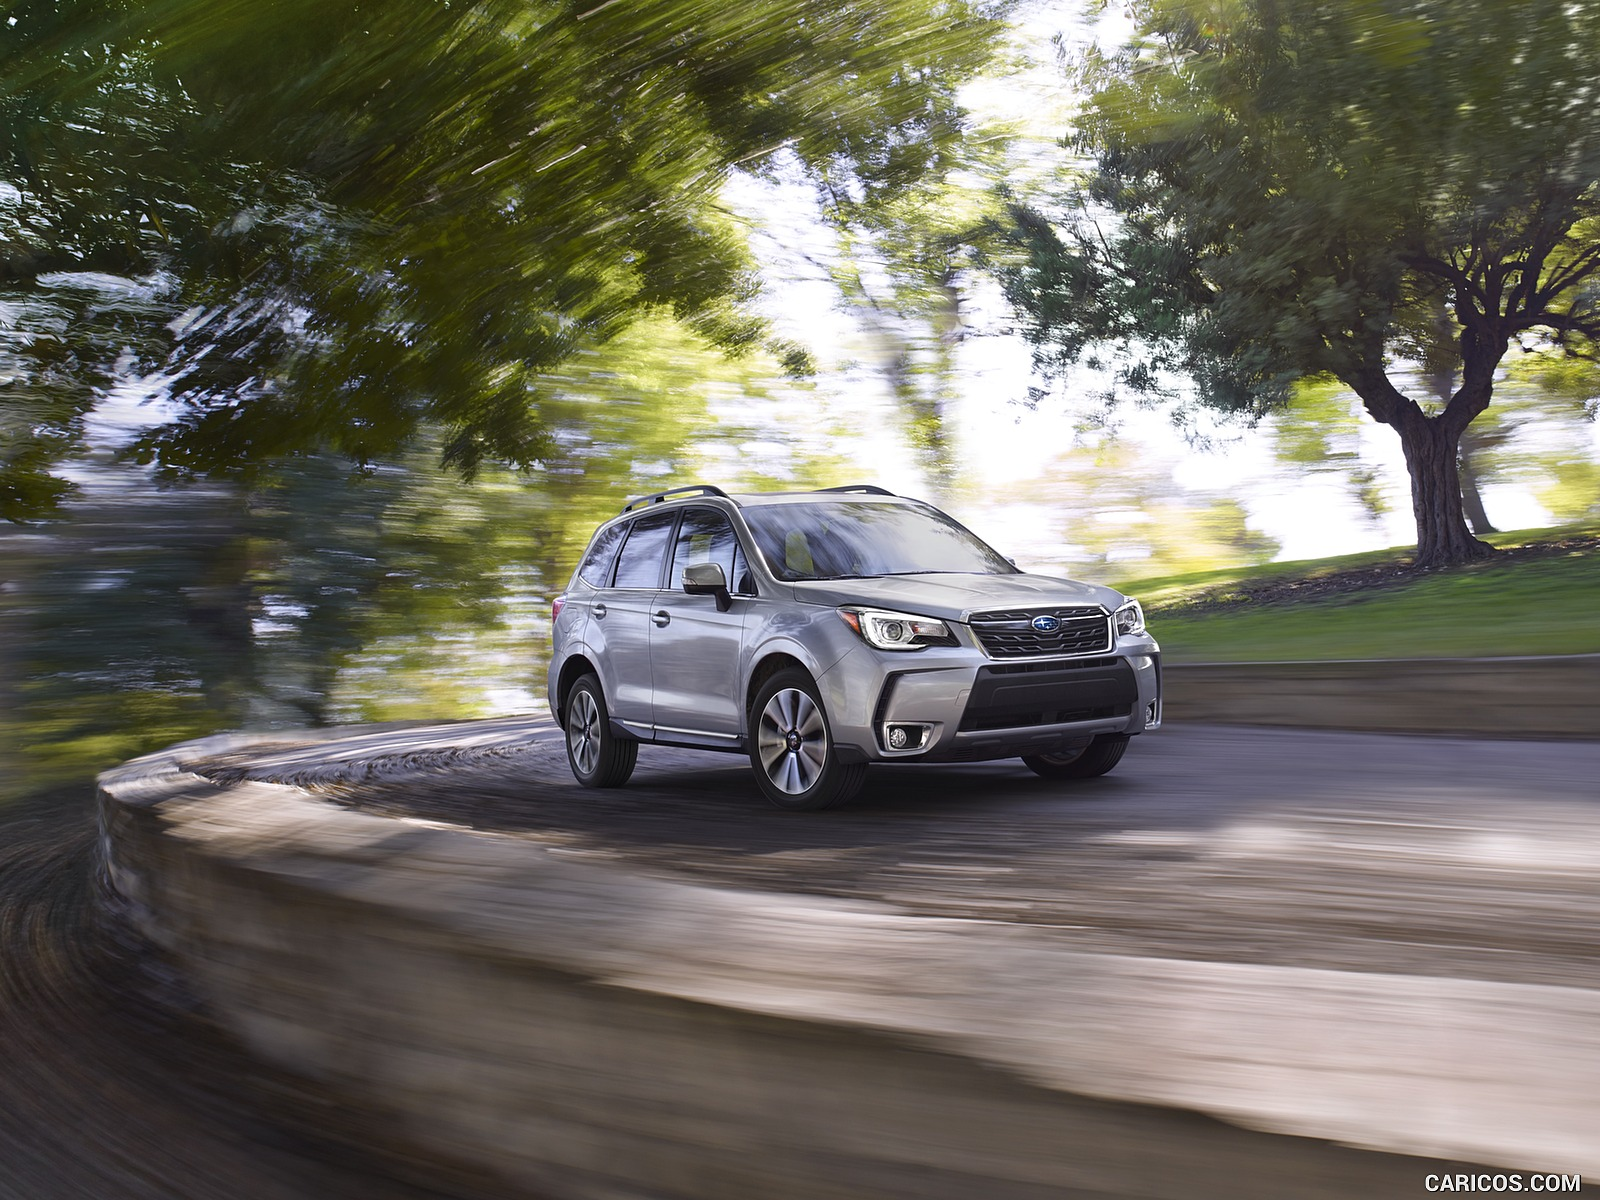 1600x1200 - Subaru Forester Wallpapers 29